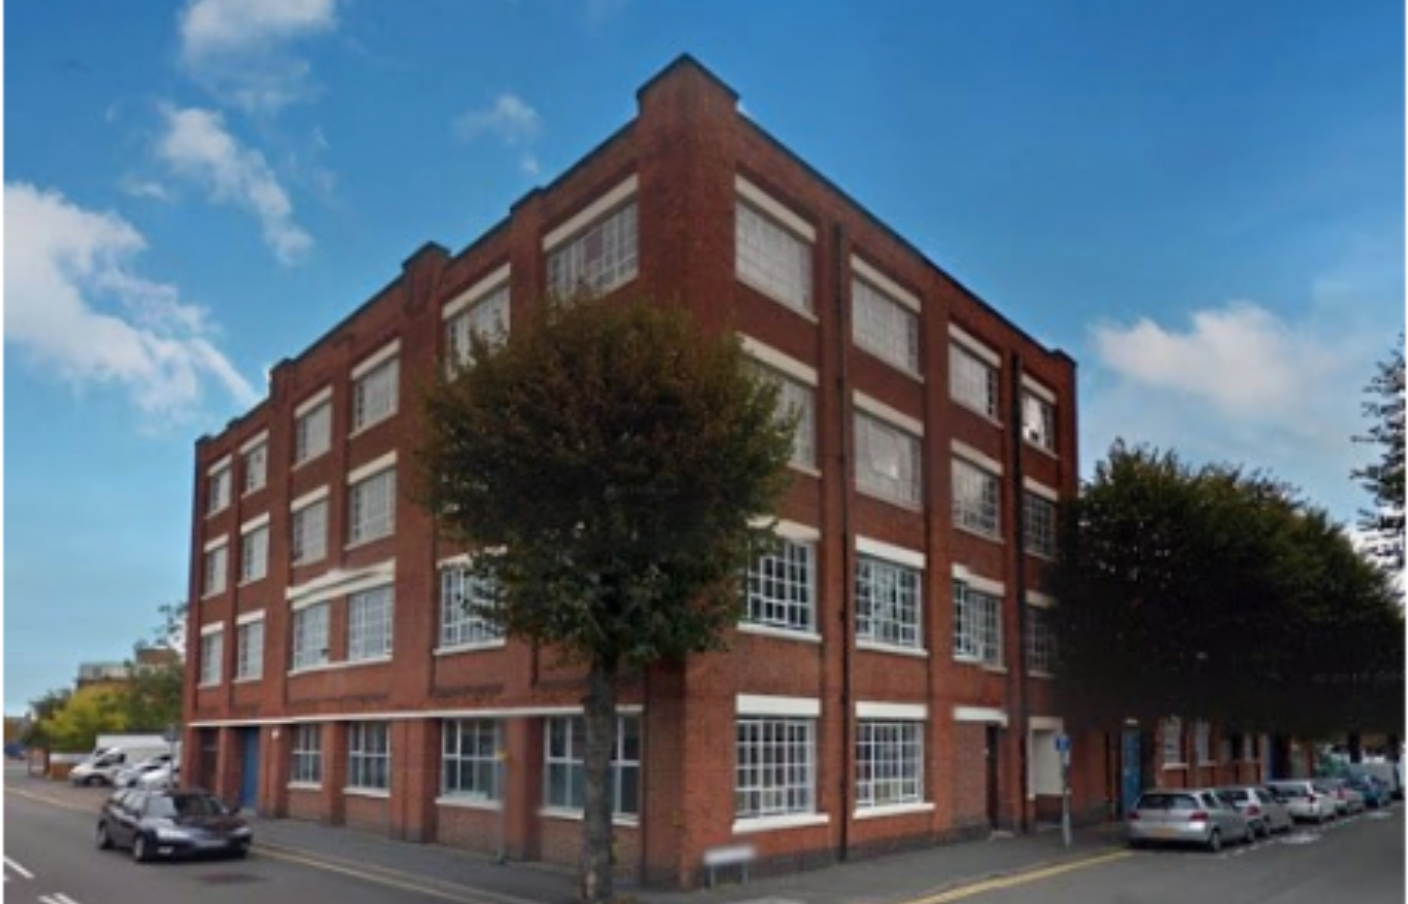 Above: Ohh Deer's new home is the top two floors of The Old Art College in Loughborough.